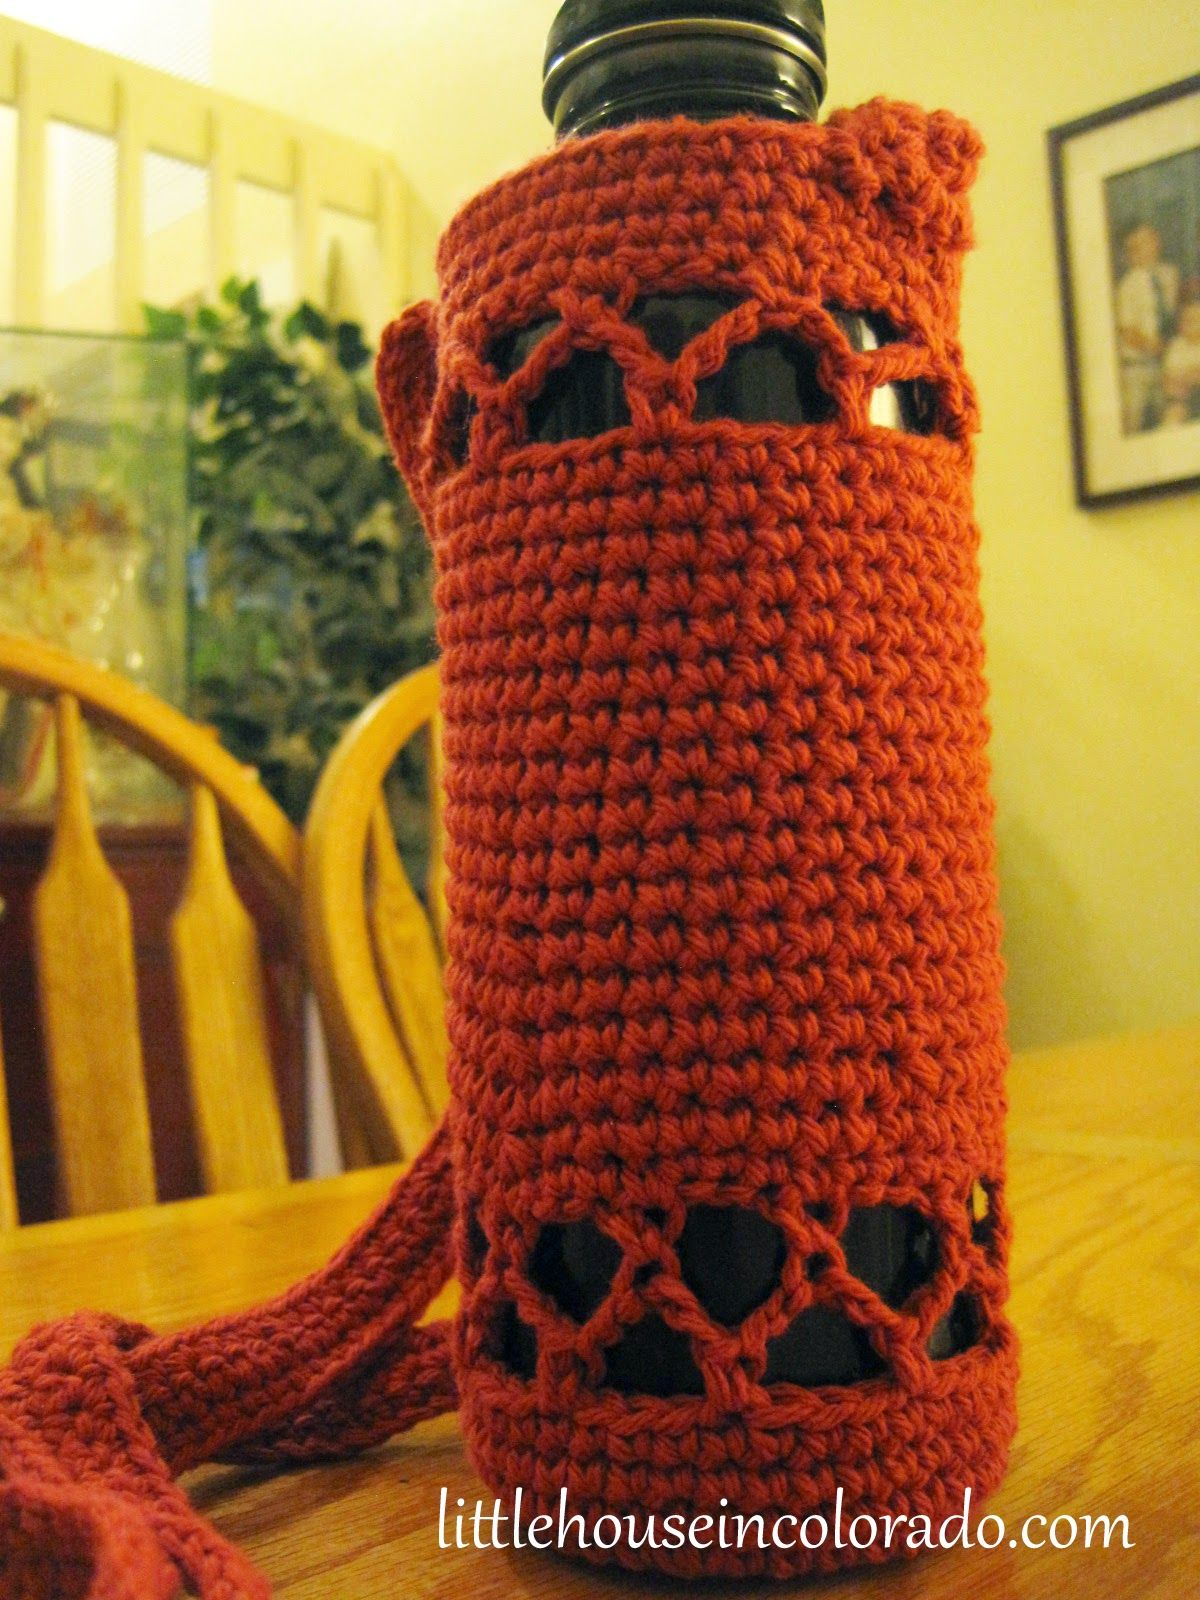 Little house in colorado pattern for crochet water bottle holders little house in colorado pattern for crochet water bottle holders bankloansurffo Choice Image